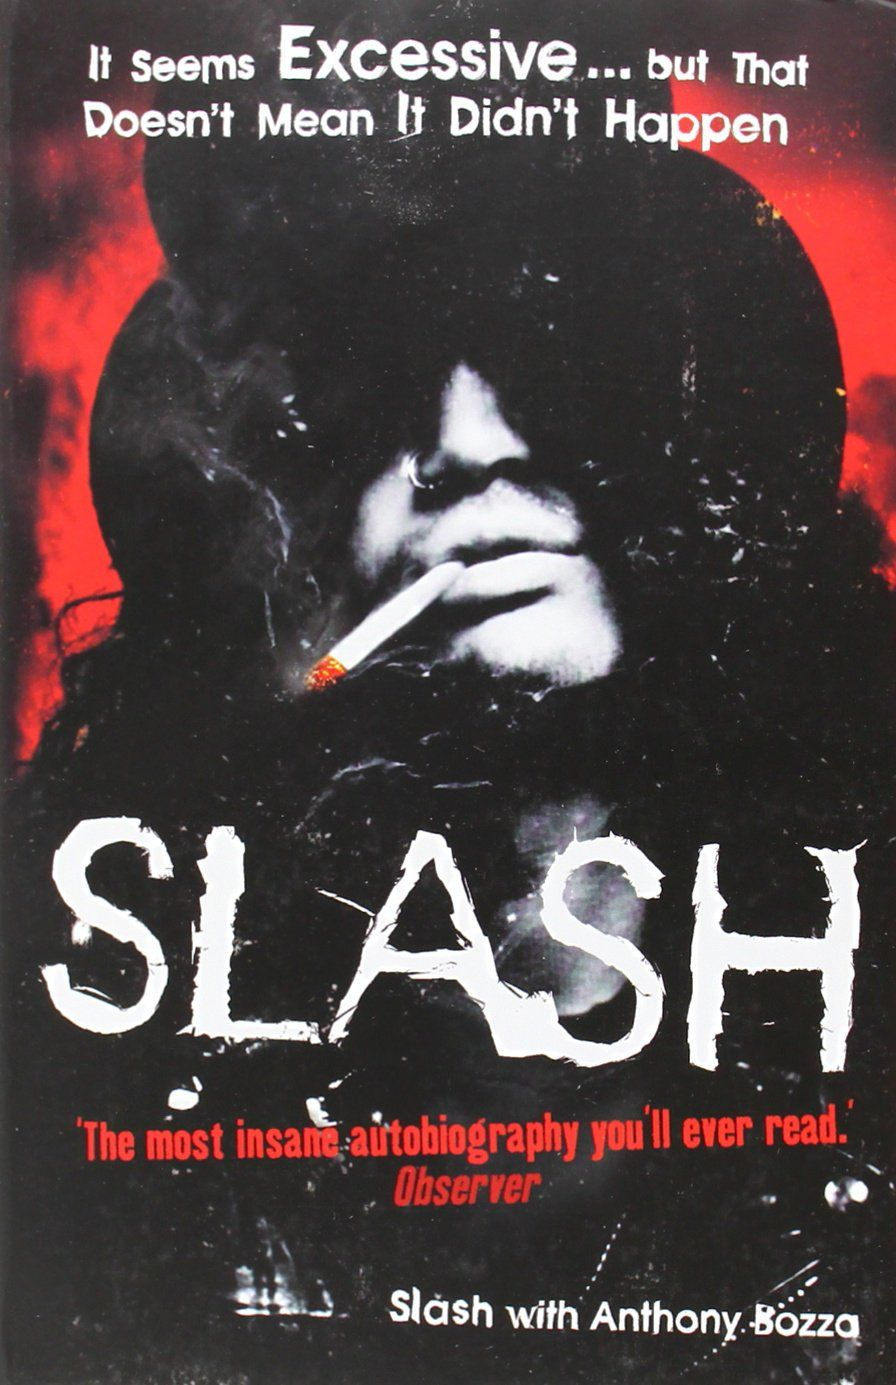 Slash The Autobiography Slash 2008 I Just Finished This One The Other Day But I Forgot To Write It Up On Here I Have To S Autobiography Good Books Slash